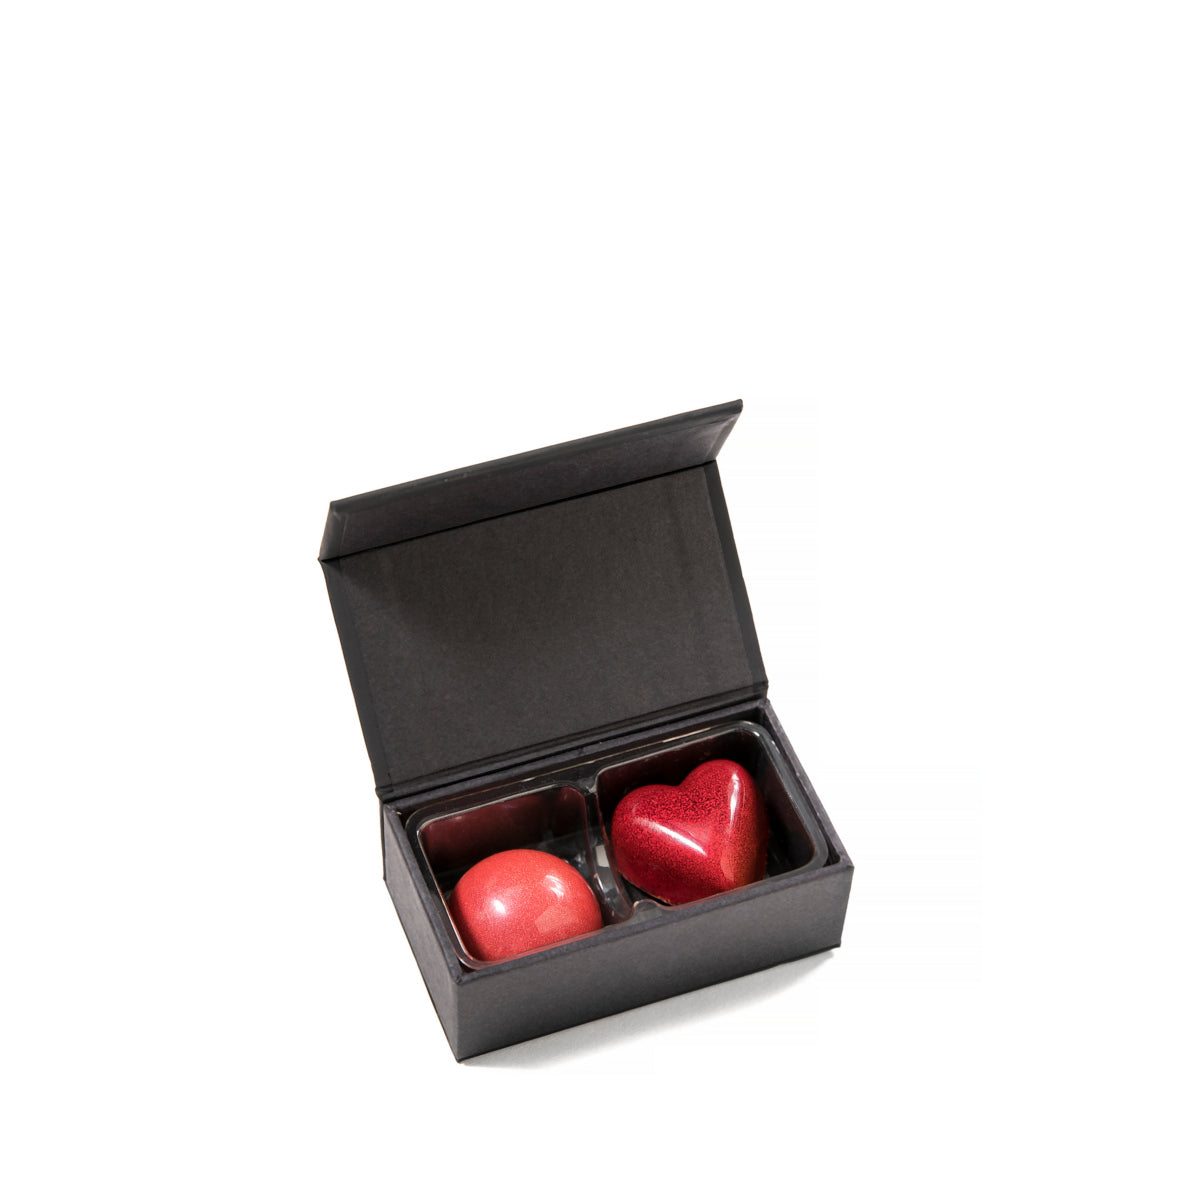 A two-piece collection of Feve chocolates, in a luxury box. Great for wedding chocolates, party favors, hotel chocolates, fine dining chocolates, and other luxury uses.